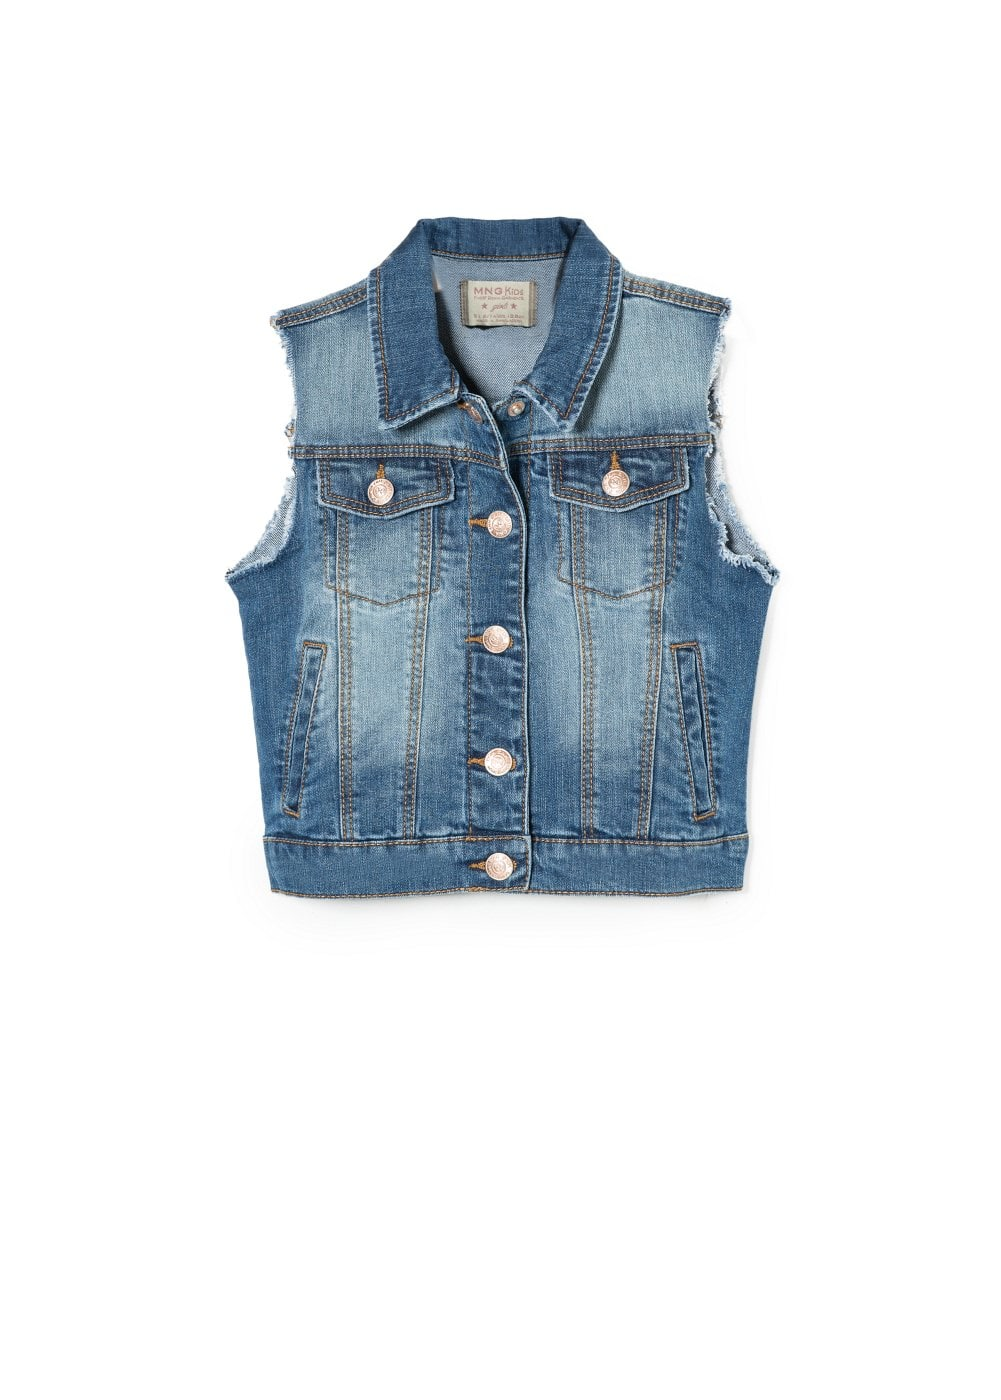 Medium denim vest